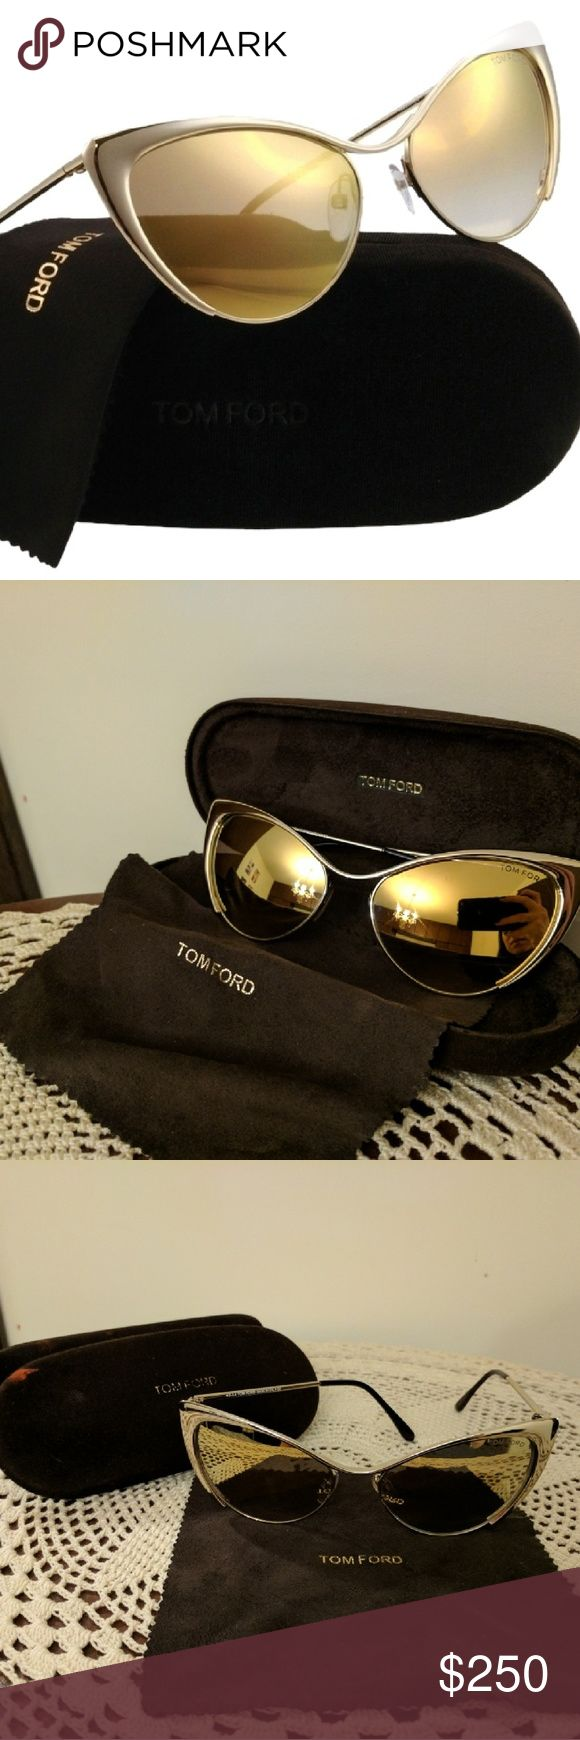 Banff national park vacations 2017 package amp save up to 603 cheap - Tom Ford Nastasya Sunglasses